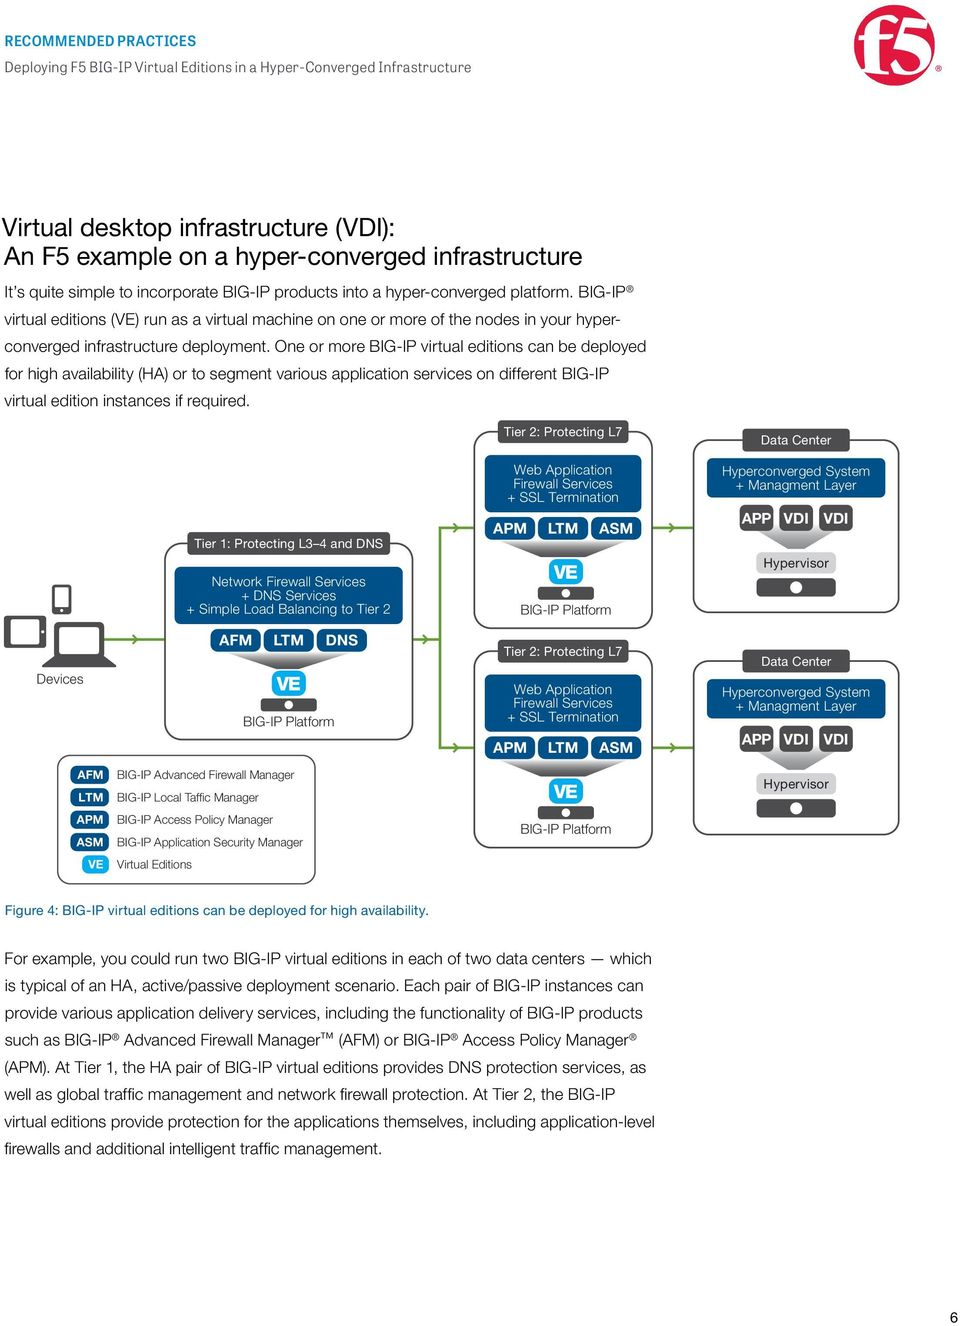 One or more BIG-IP virtual editions can be deployed for high availability (HA) or to segment various application services on different BIG-IP virtual edition instances if required.